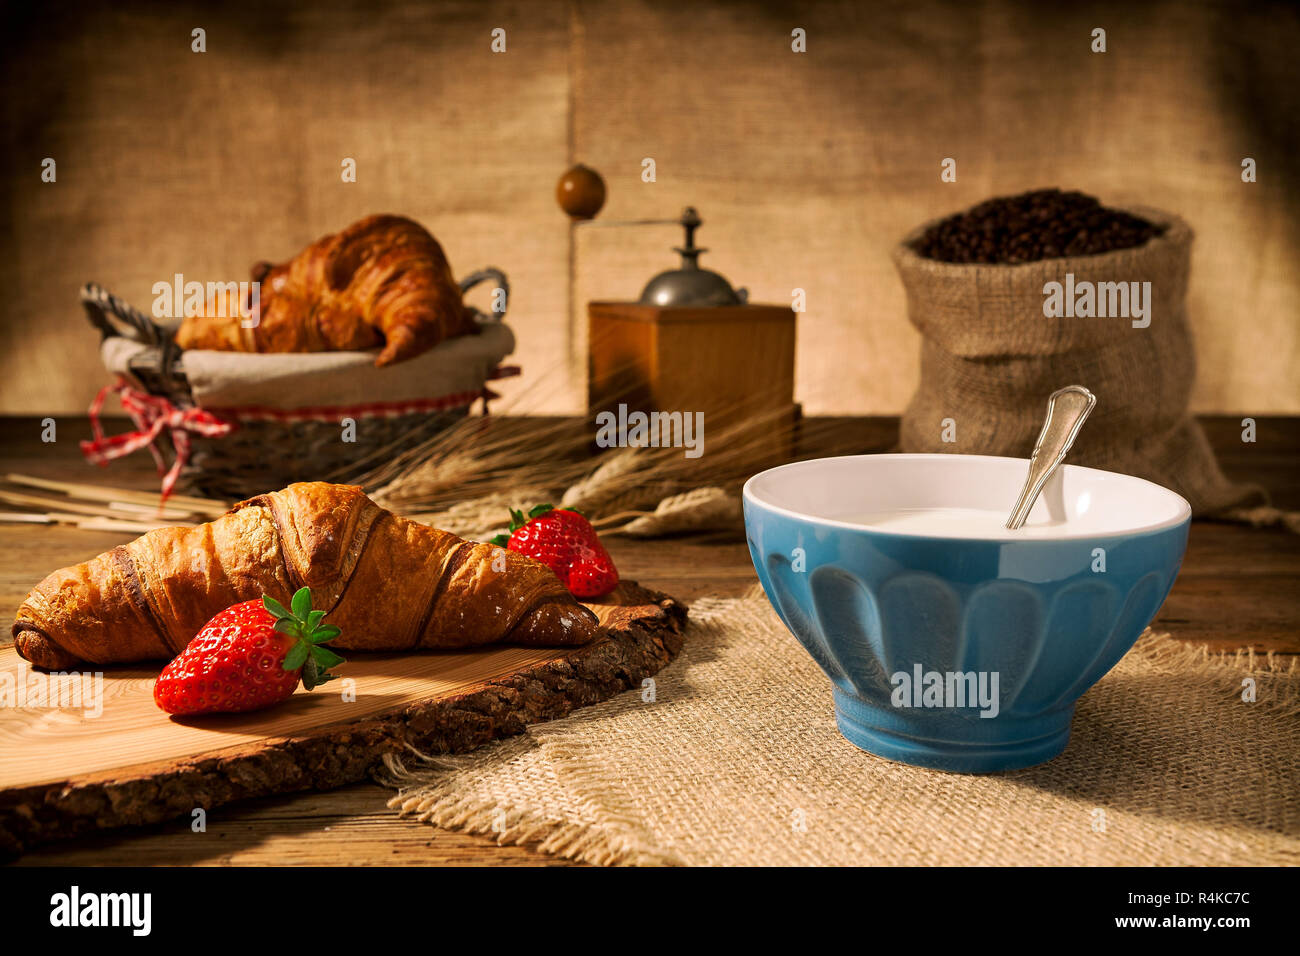 Continental breakfast with croissant and milk - Stock Image